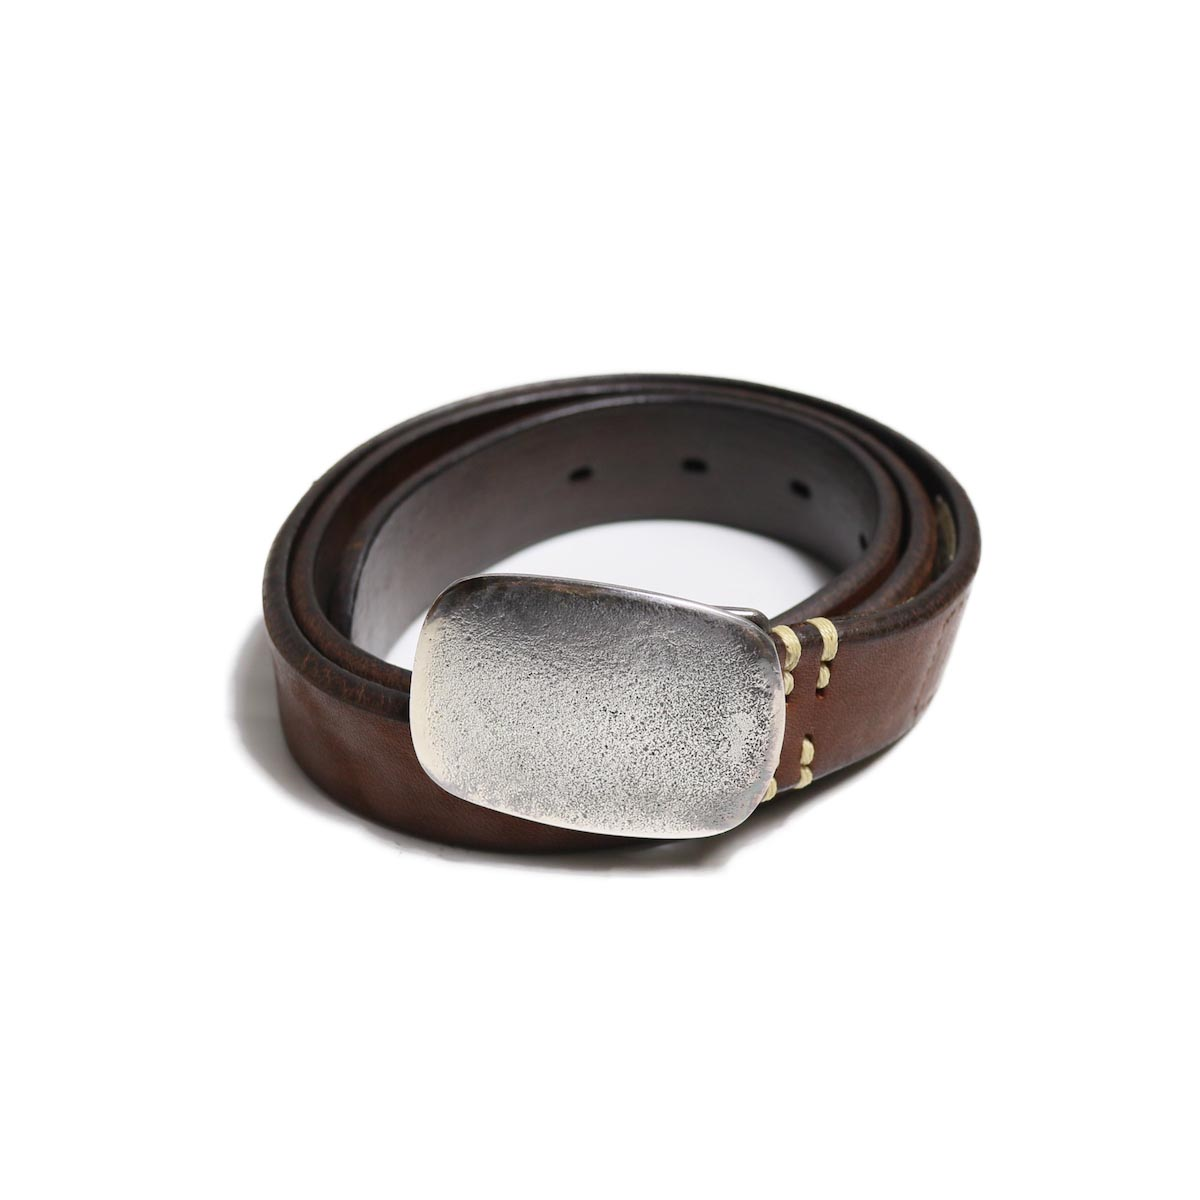 Vintage Works / DH5717 Leather Belt -BRONZE